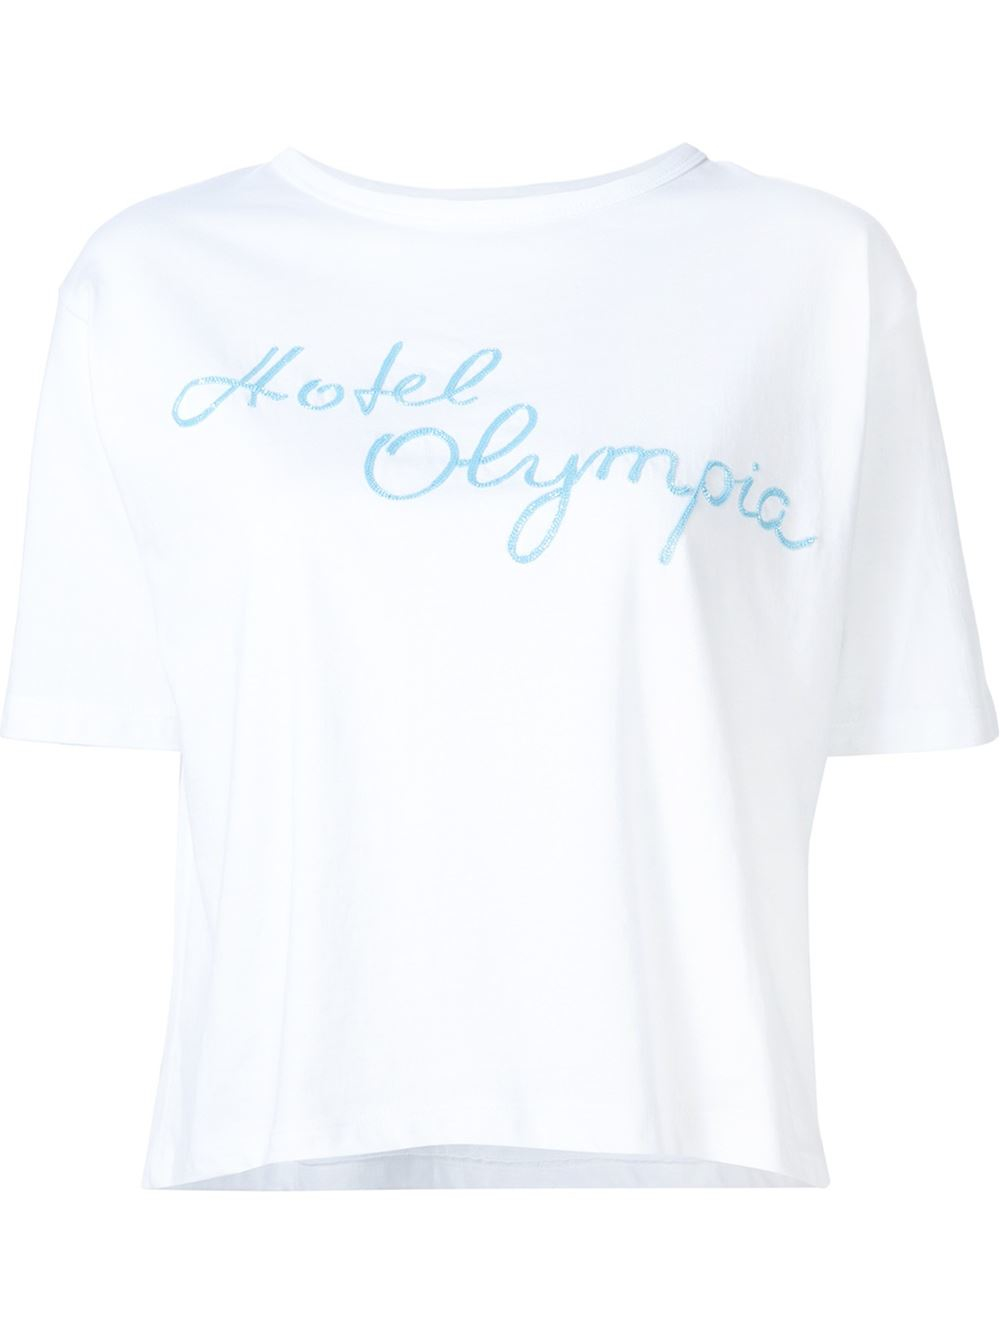 Lyst Olympia Le Tan Logo Print T Shirt In White